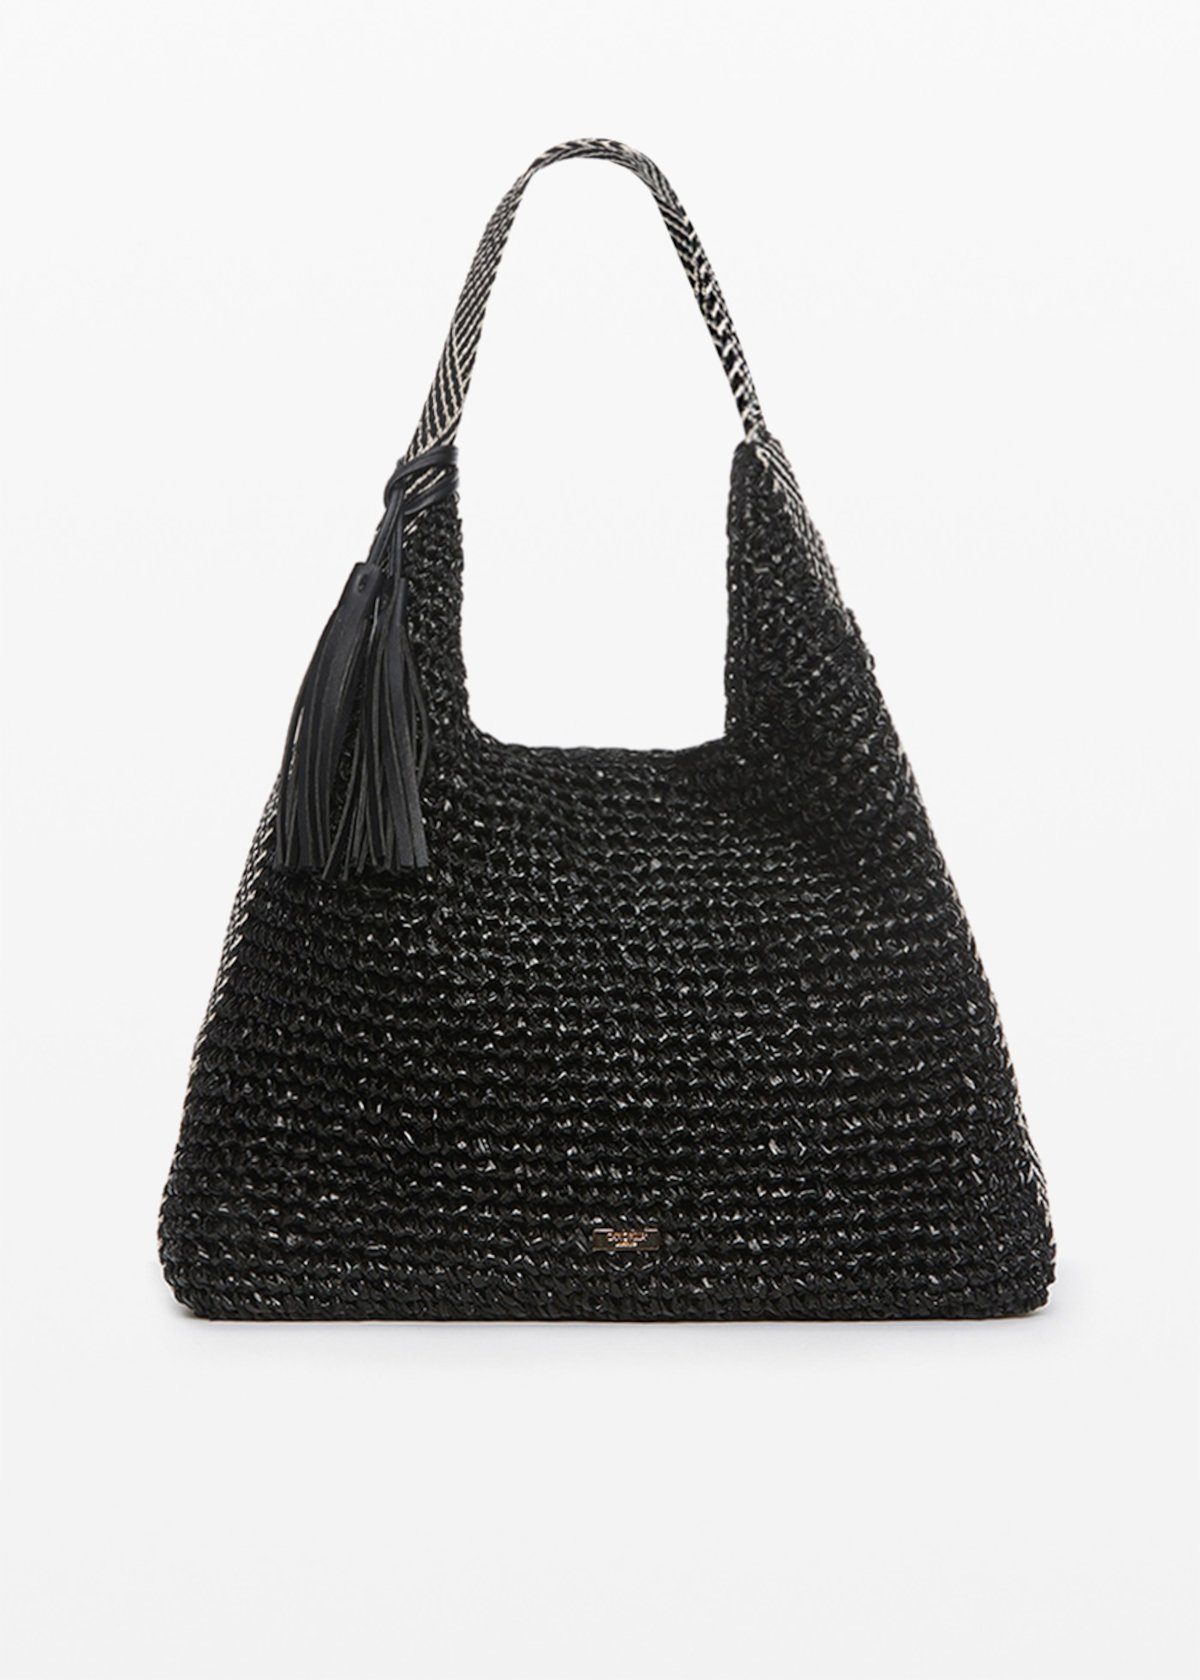 Hobo bag Blondys con decoro intreccio - Black - Donna - Immagine categoria